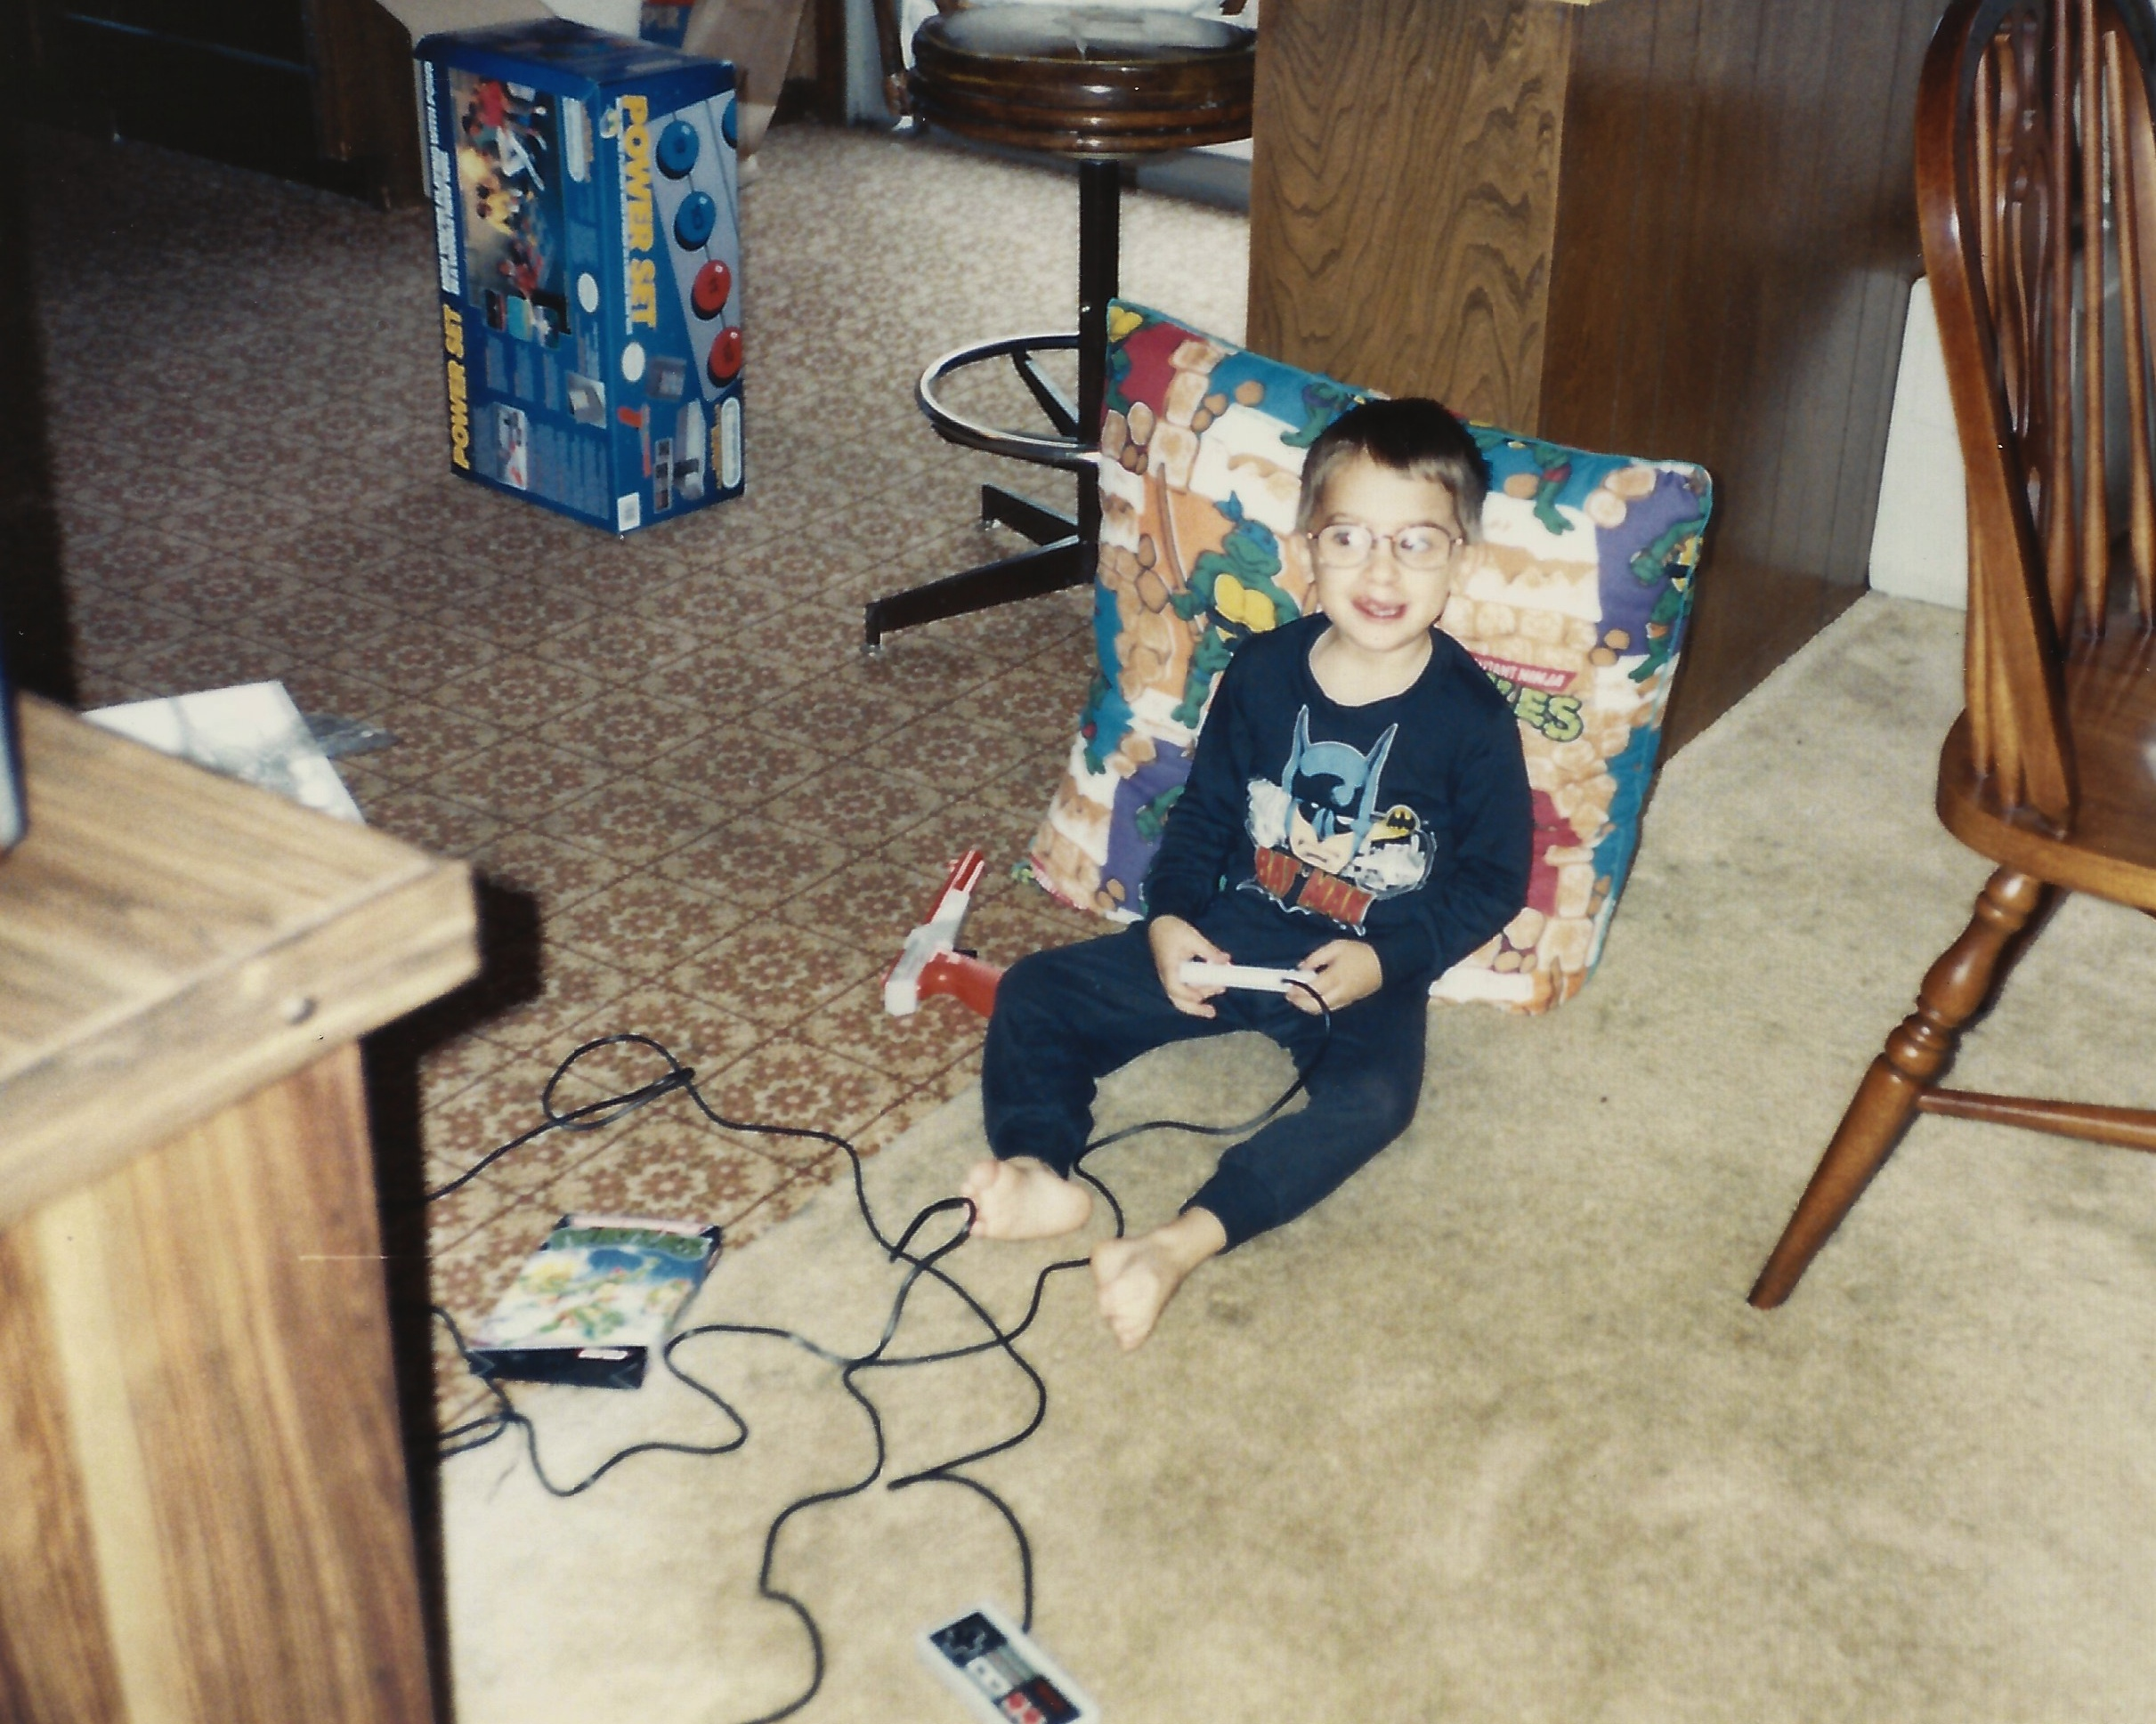 Proof '90s kids playing video games are cooler than kids today